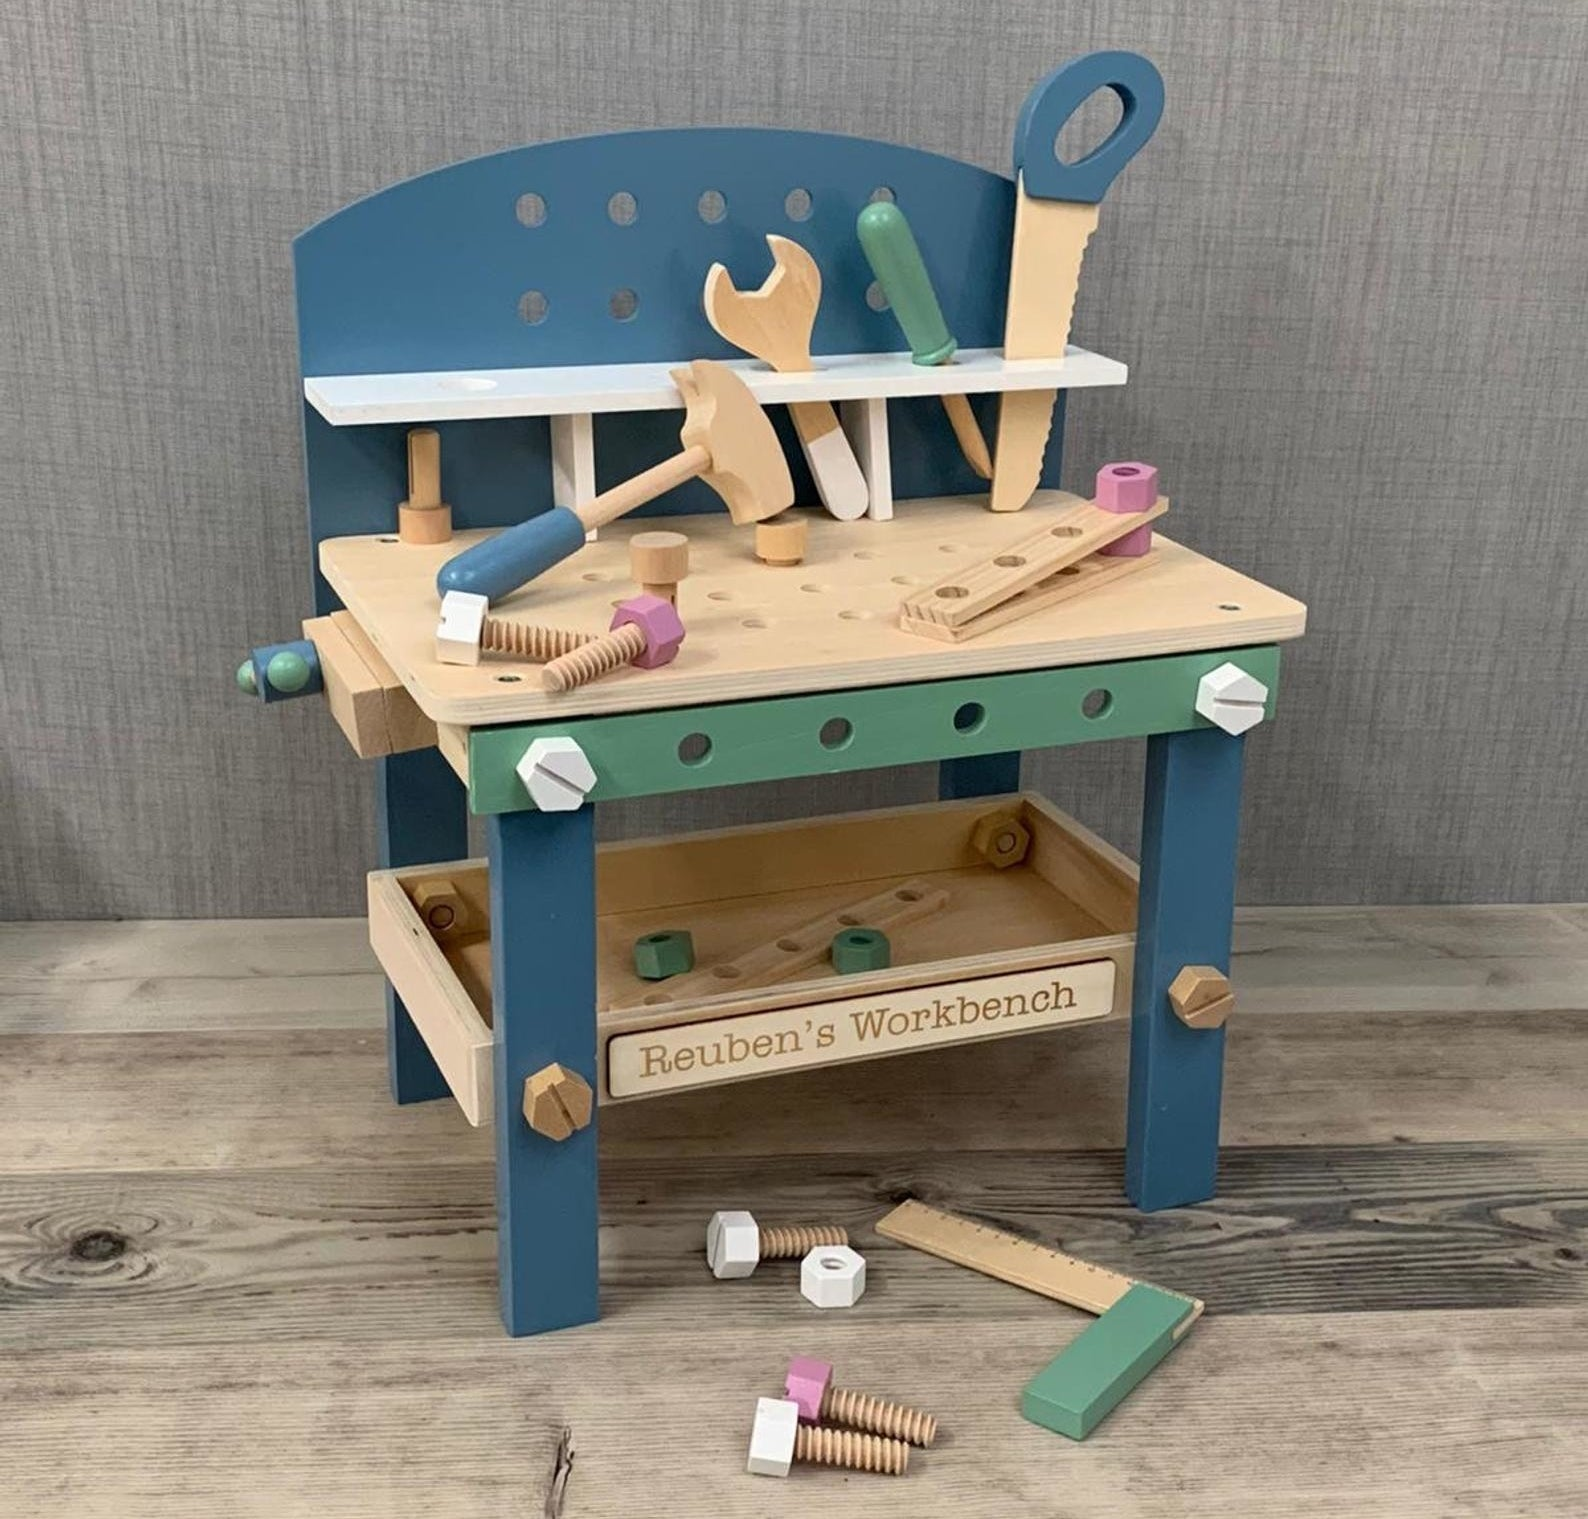 A wooden blue and green toy workbench with various tools